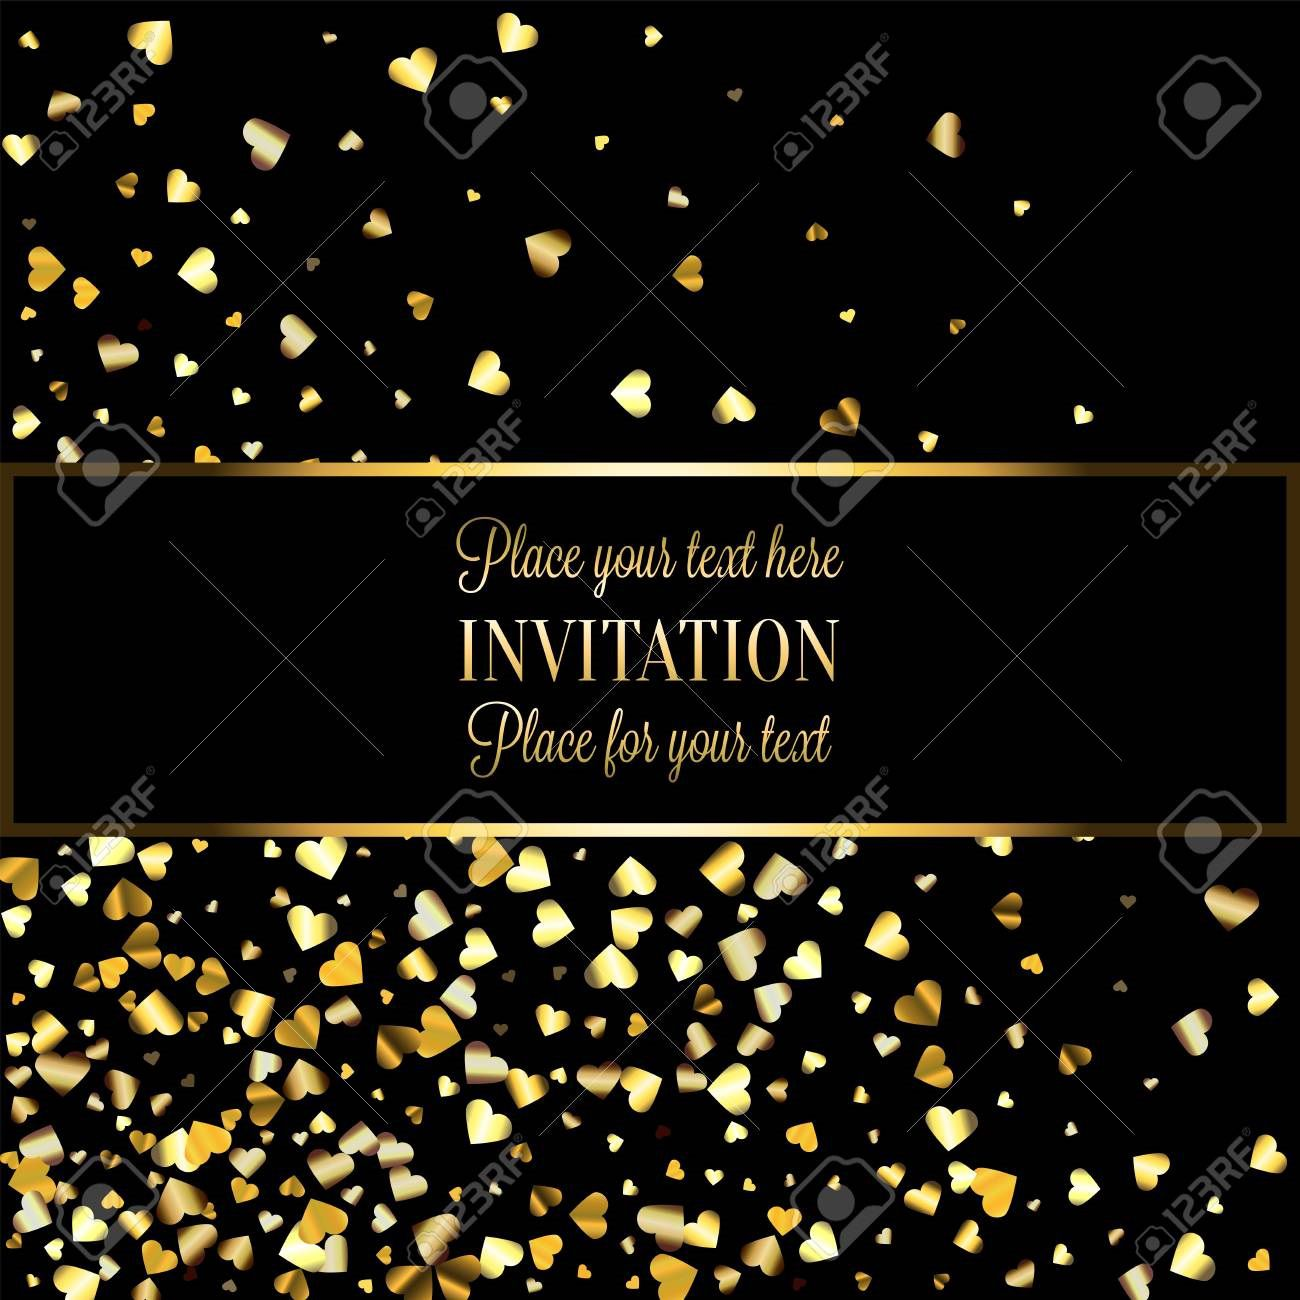 005 Dreaded Black And Gold Invitation Template Highest Quality  Design White Free PrintableFull